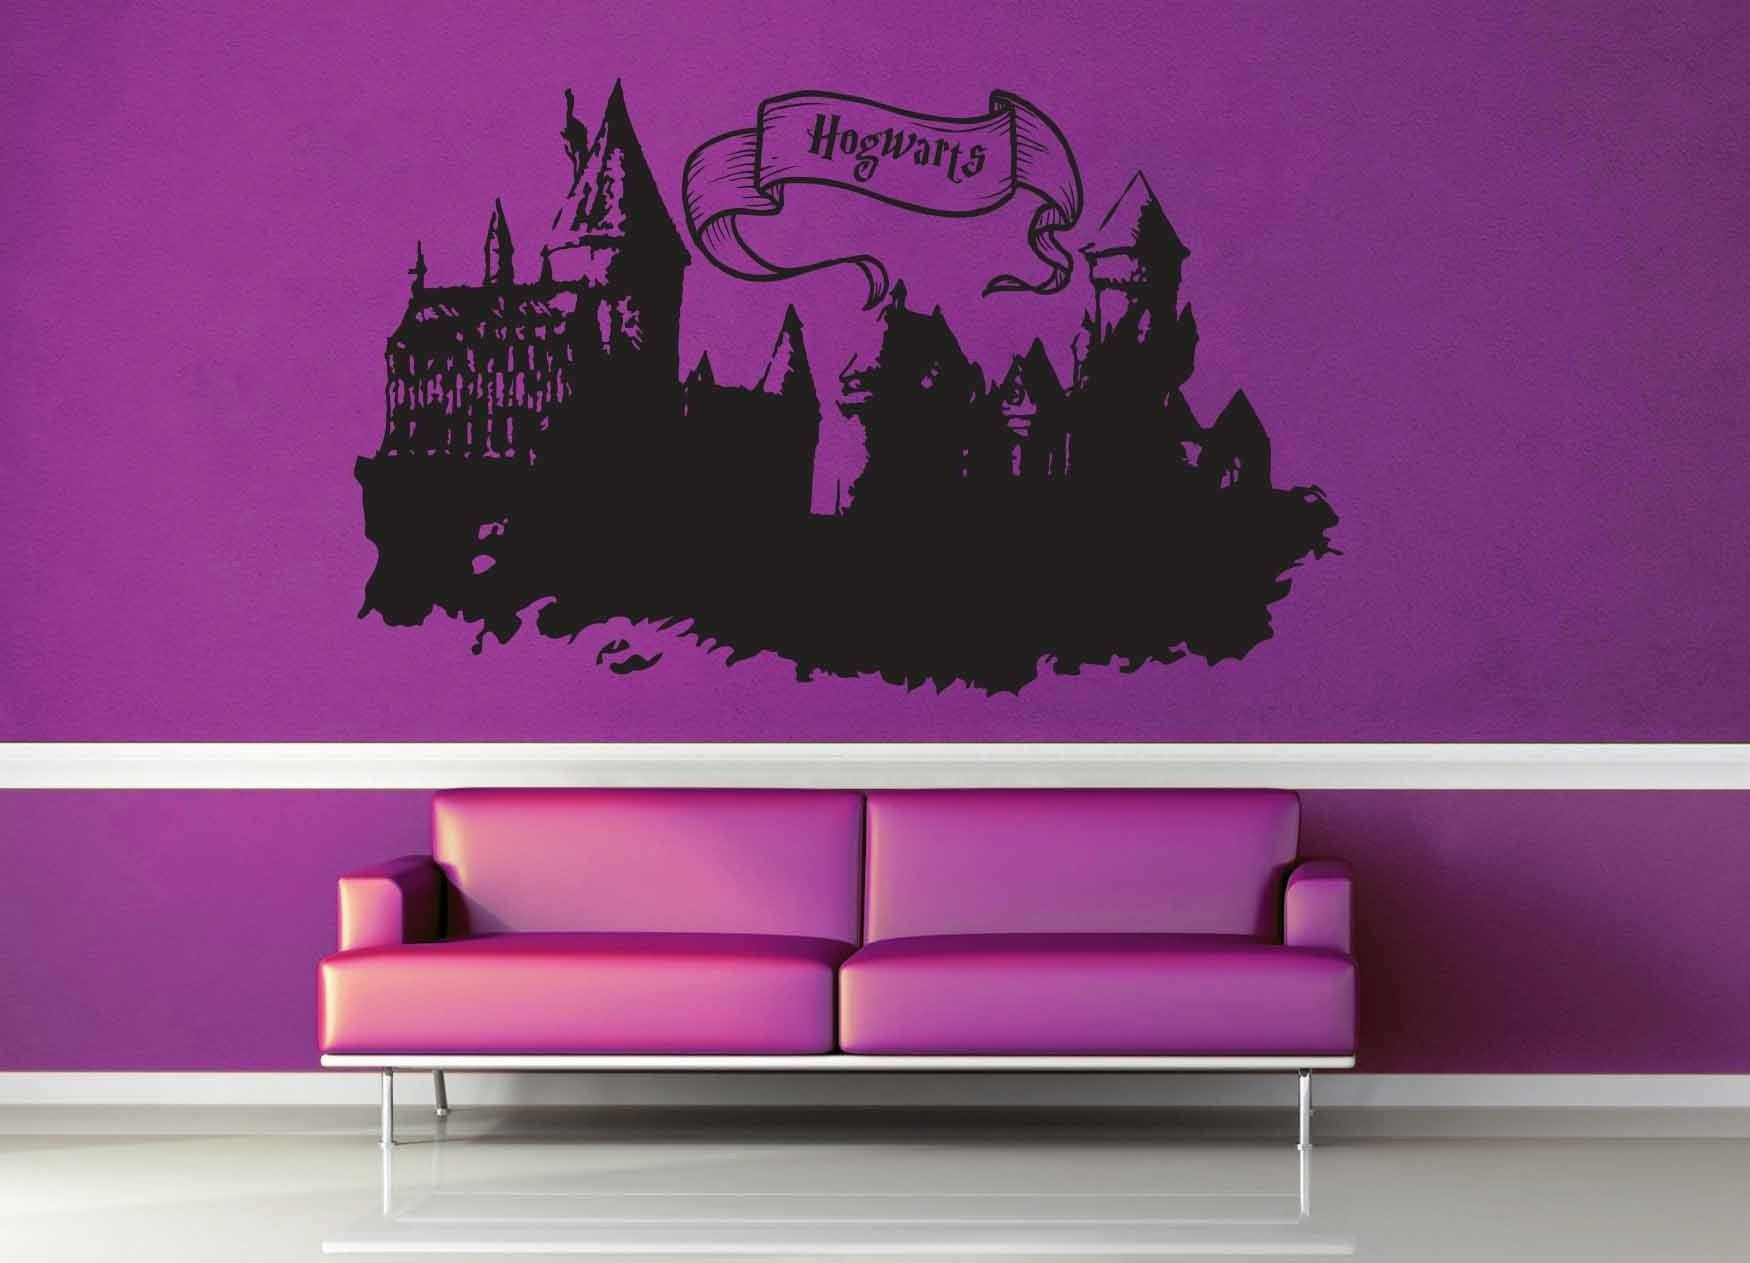 Hogwarts Castle   Harry Potter   Wall Decal   No 2